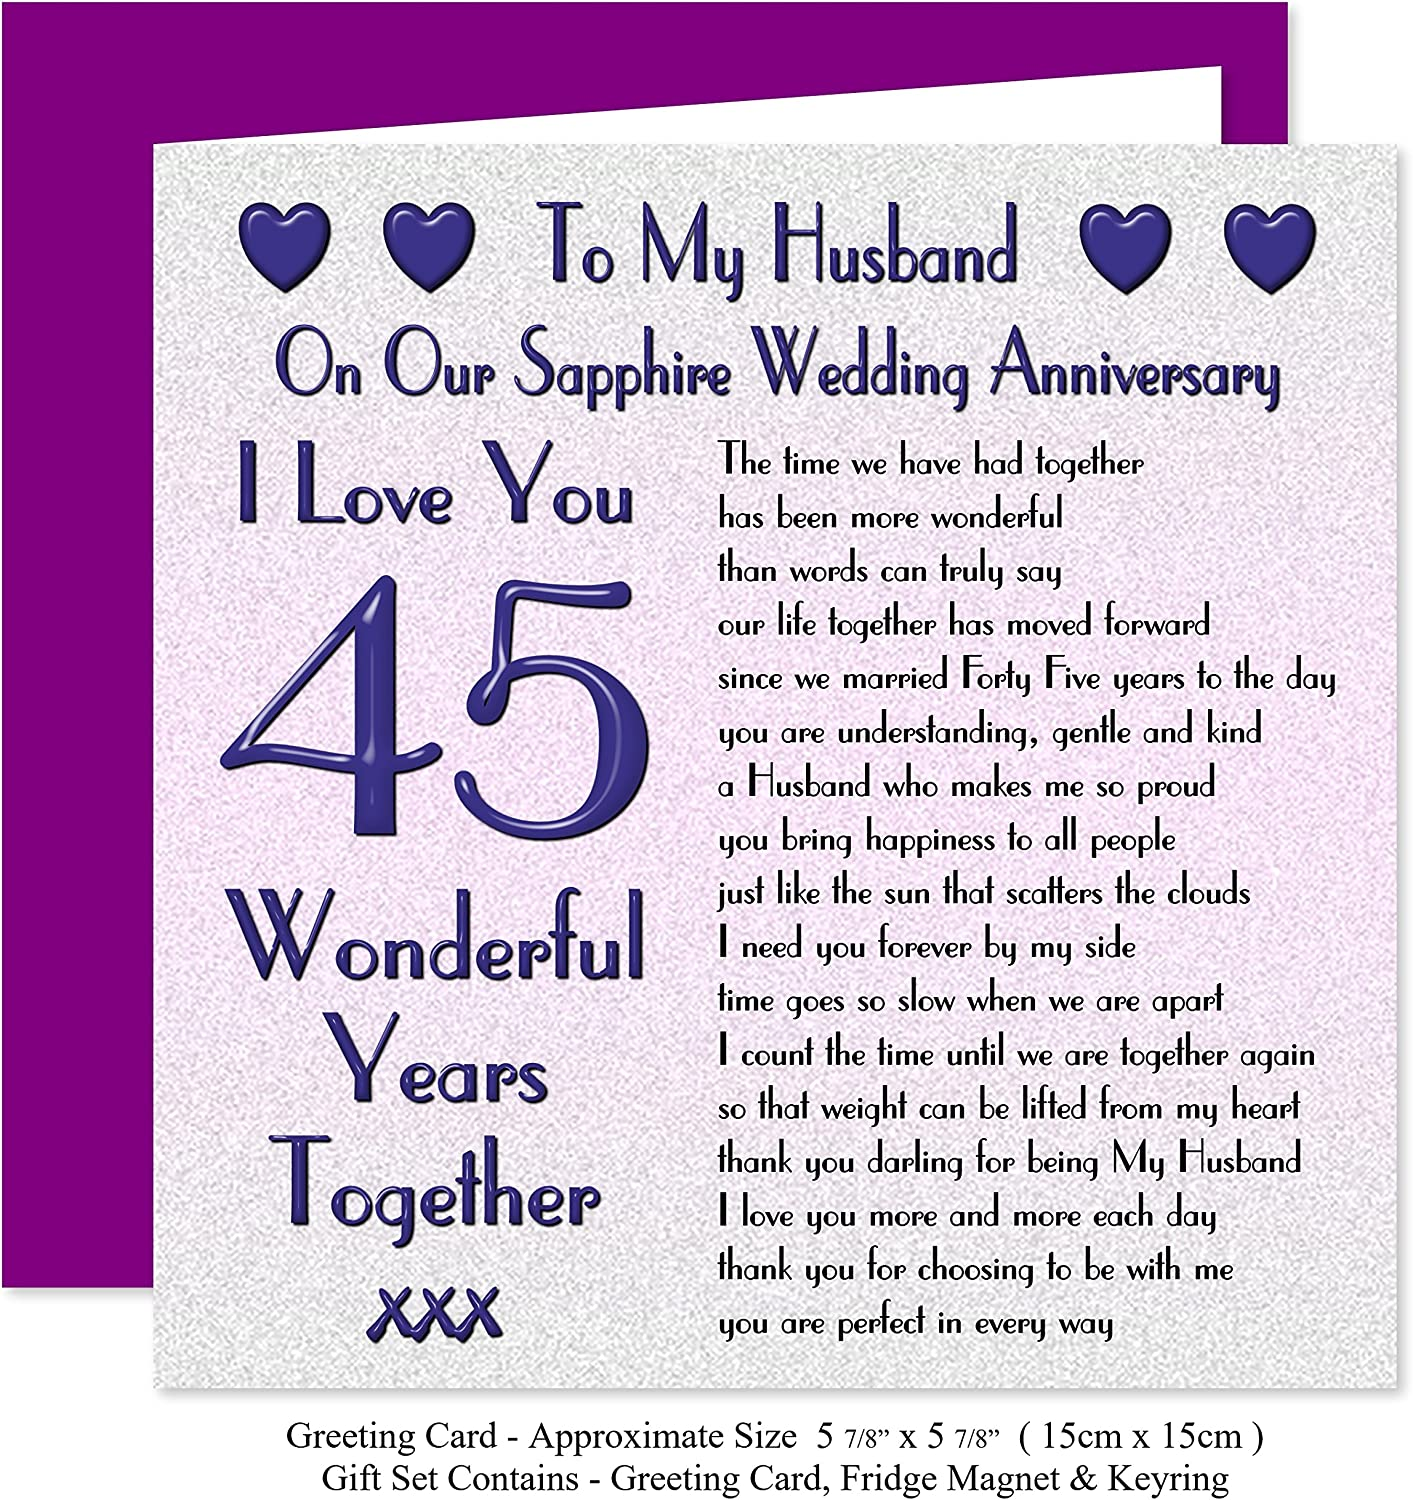 My Husband 45th Wedding Anniversary Gift Set Card Keyring Fridge Magnet Present On Our Sapphire Anniversary 45 Years Sentimental Verse I Love You Amazon Co Uk Office Products